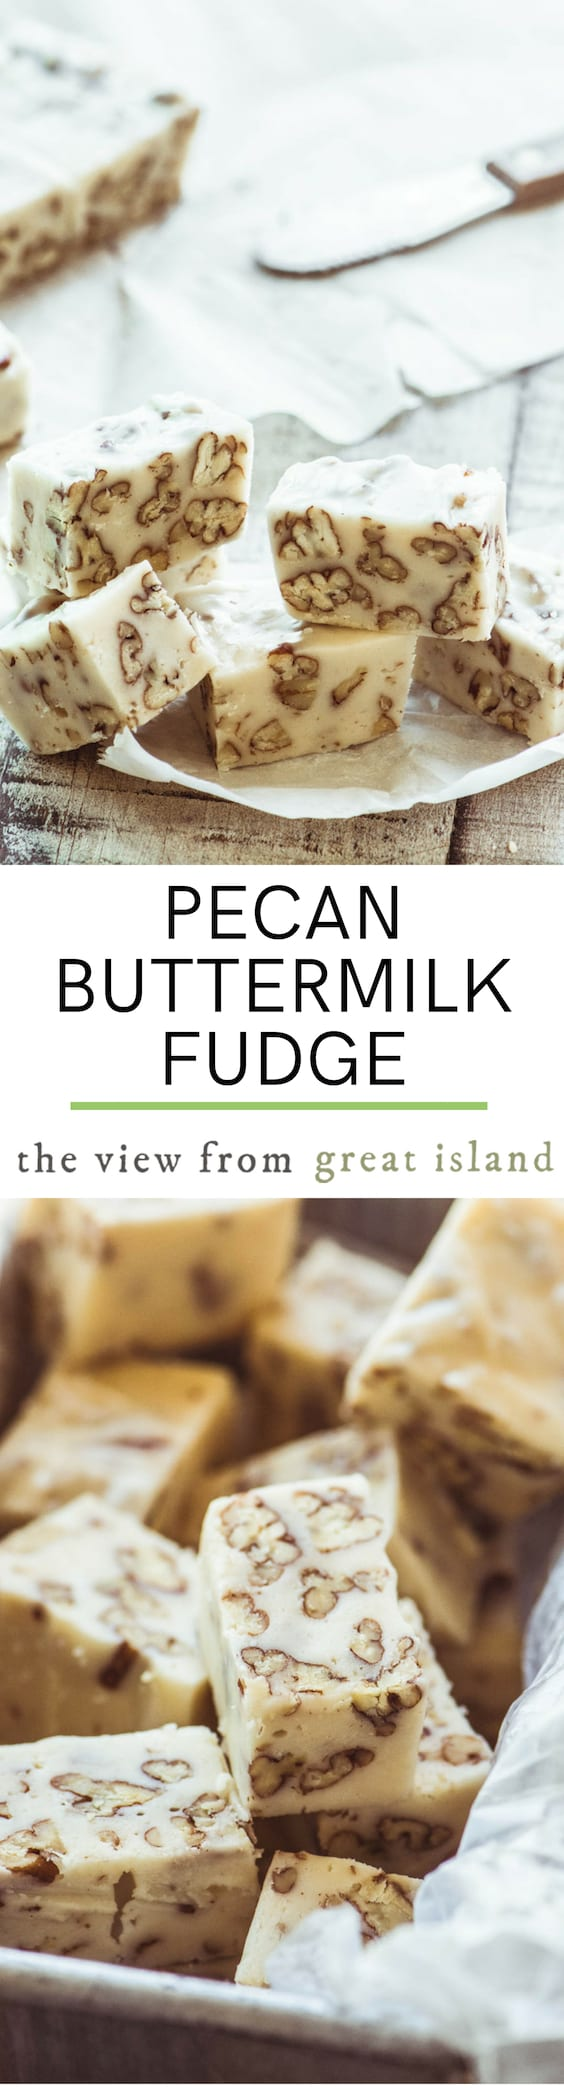 Pecan Buttermilk Fudge ~ this creamy white fudge has got a sweet tangy flavor like nothing else I've ever tasted. #candy #fudge #homemade #easy #recipe #foodgift #dessert #buttermilk #white #pecans #fromscratch